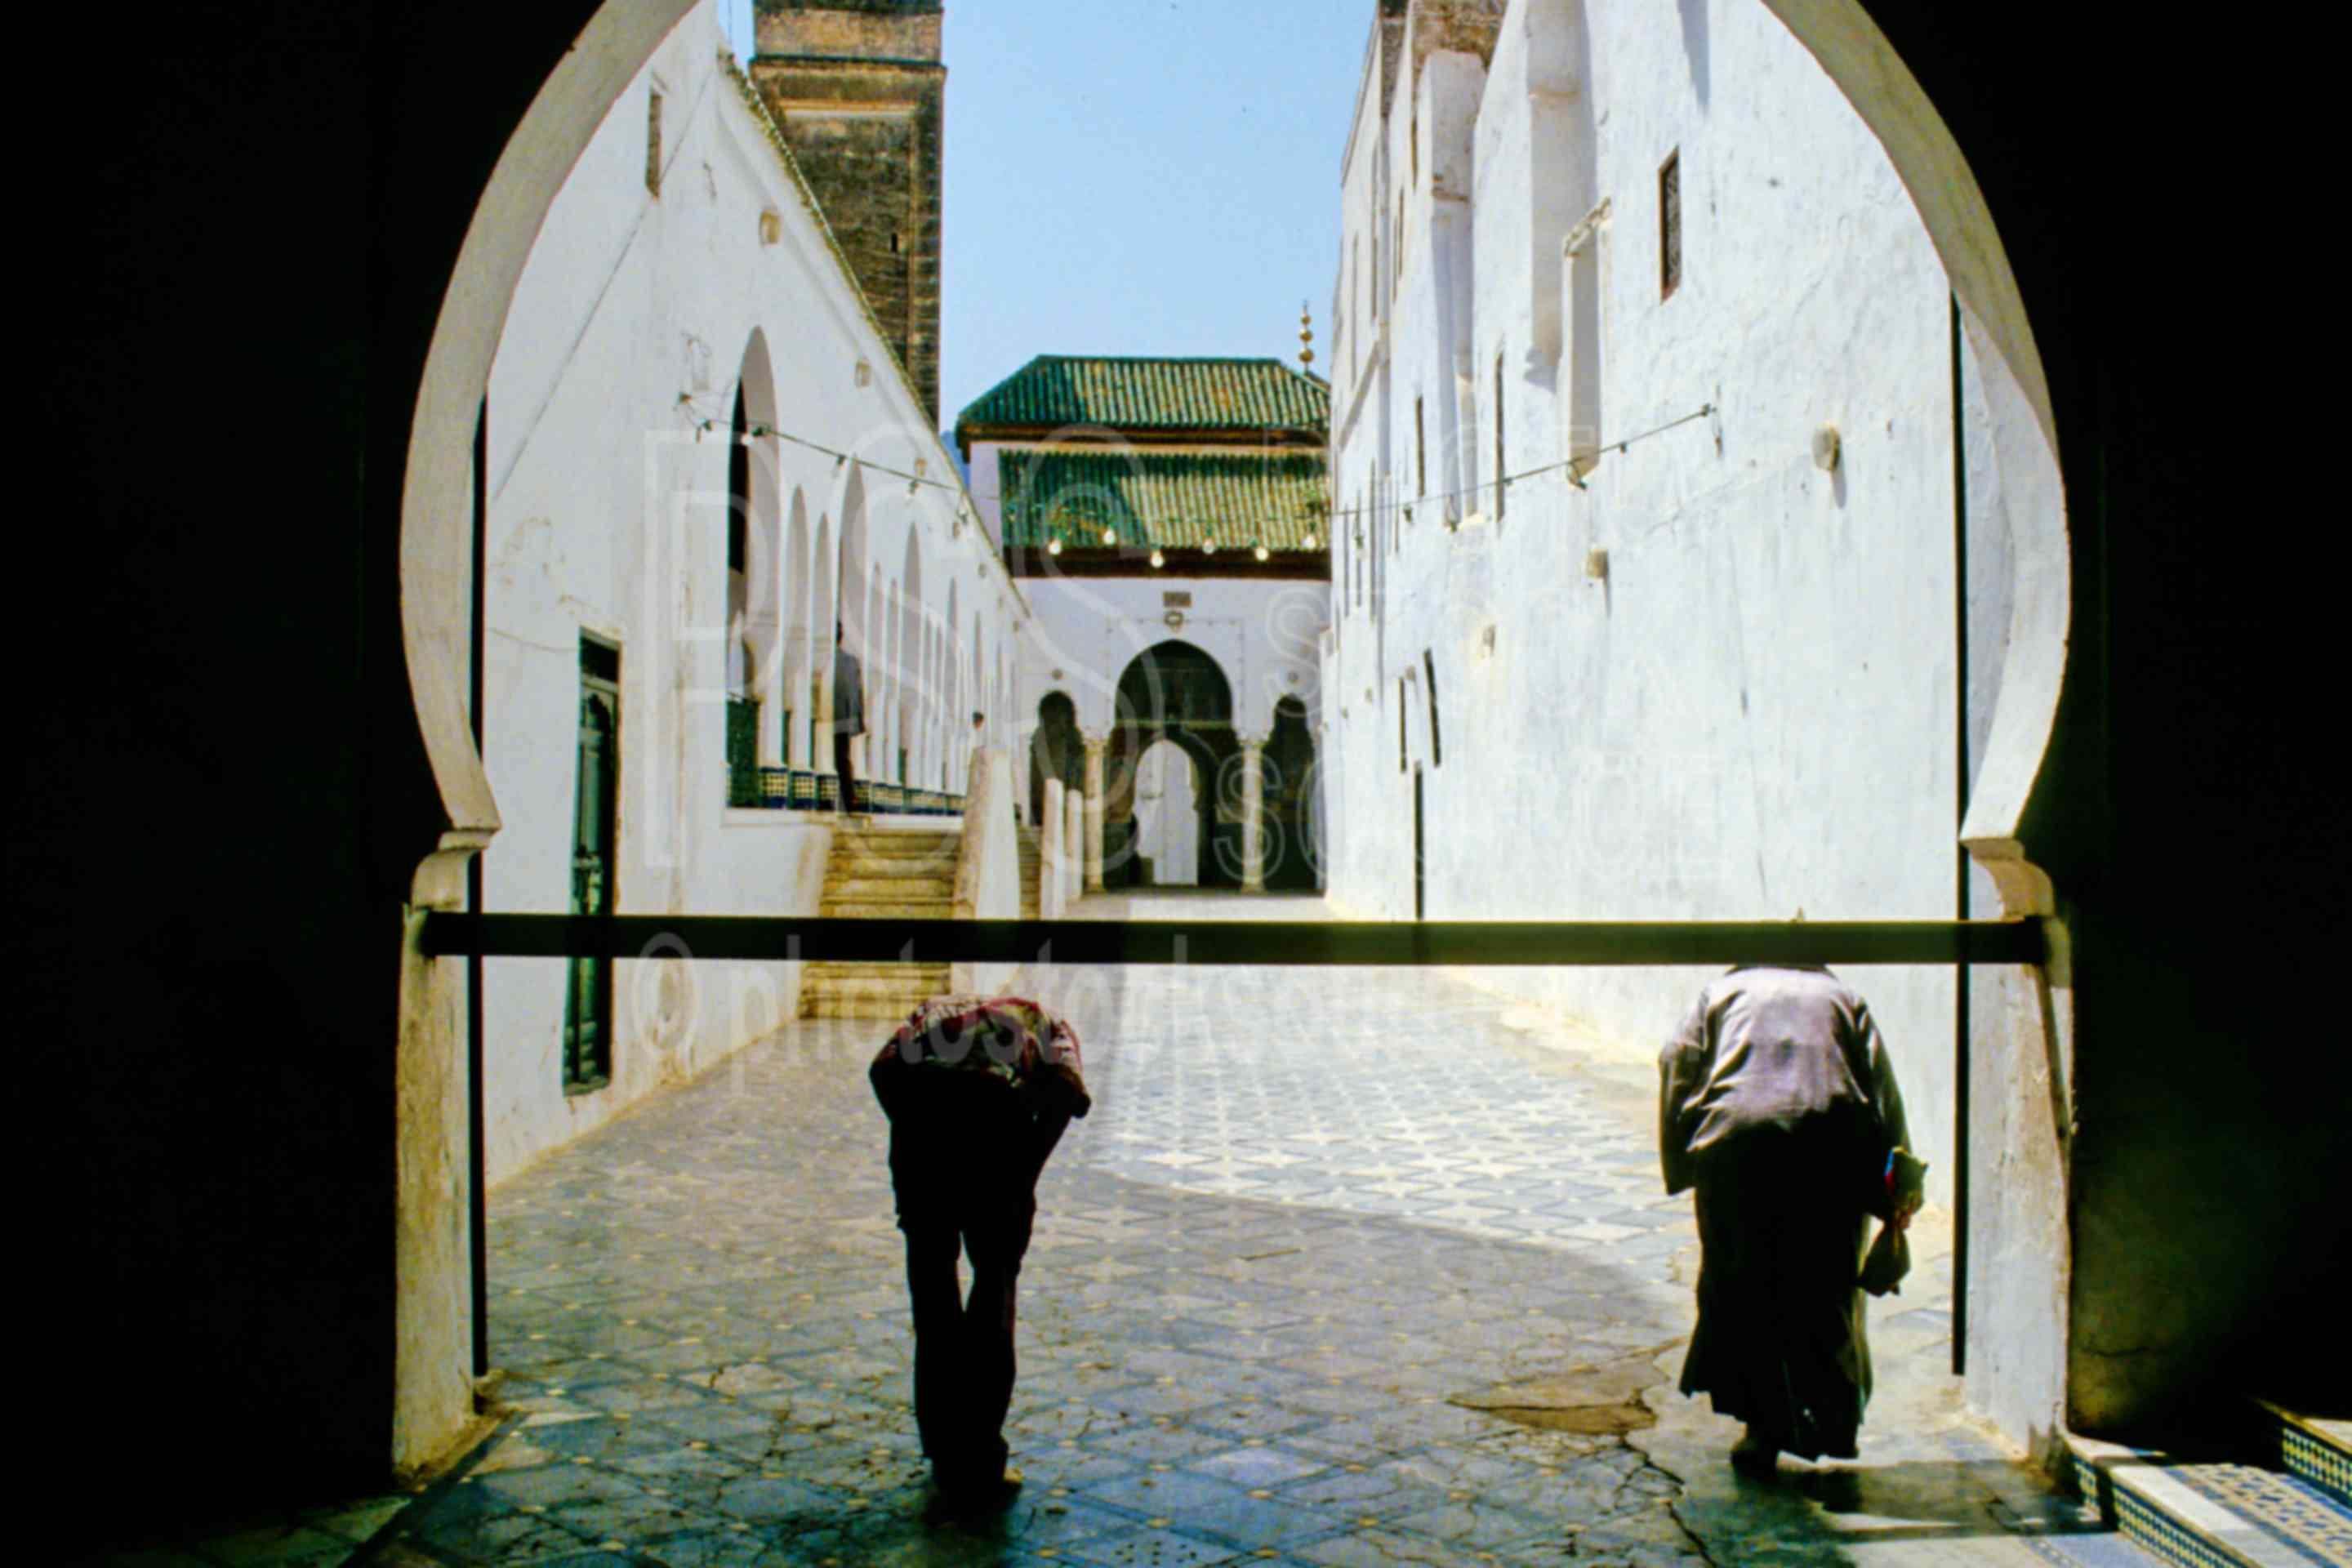 Karaouine Mosque Gate,entrance,gate,people,steps,morocco mosques